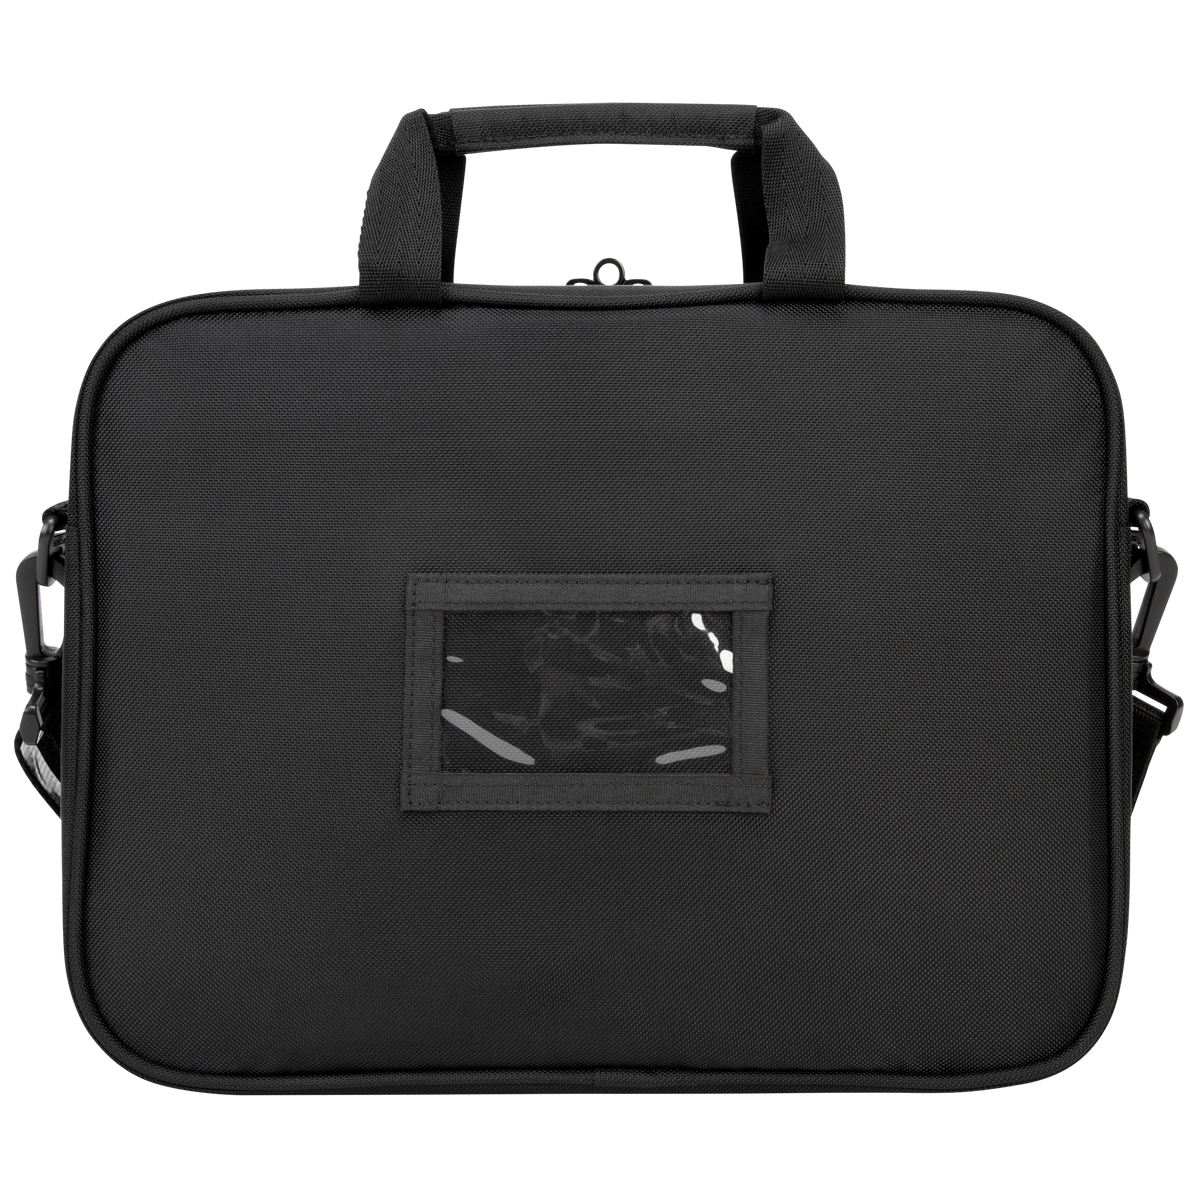 Steampunk clear briefcase png. Intellect slim laptop black